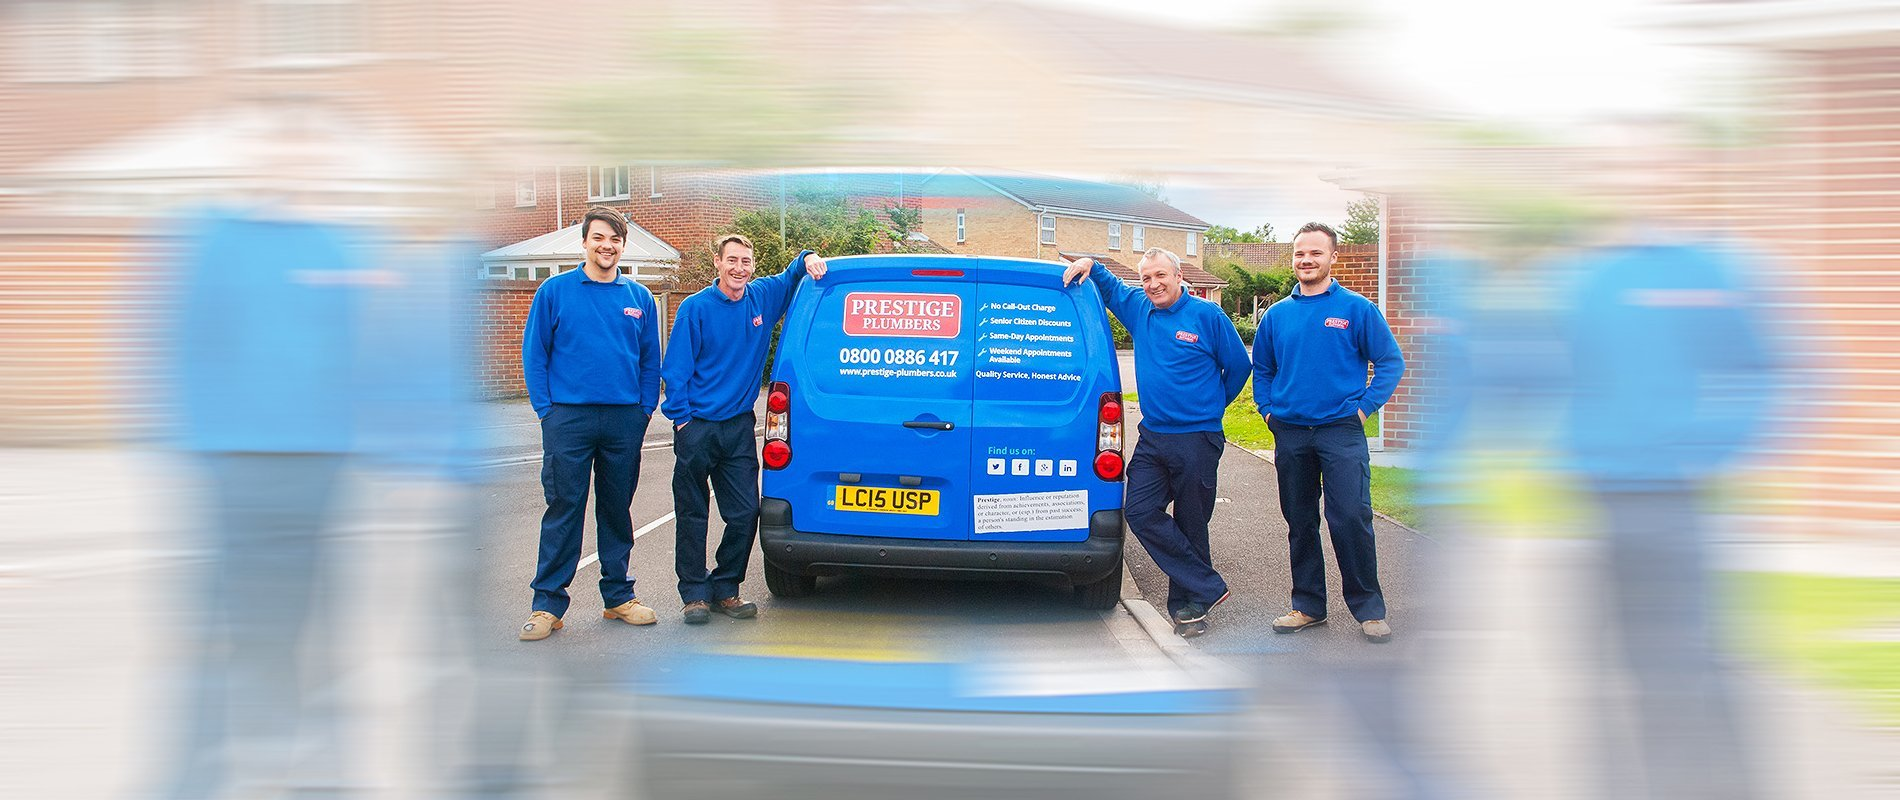 Local plumbers with a blue van